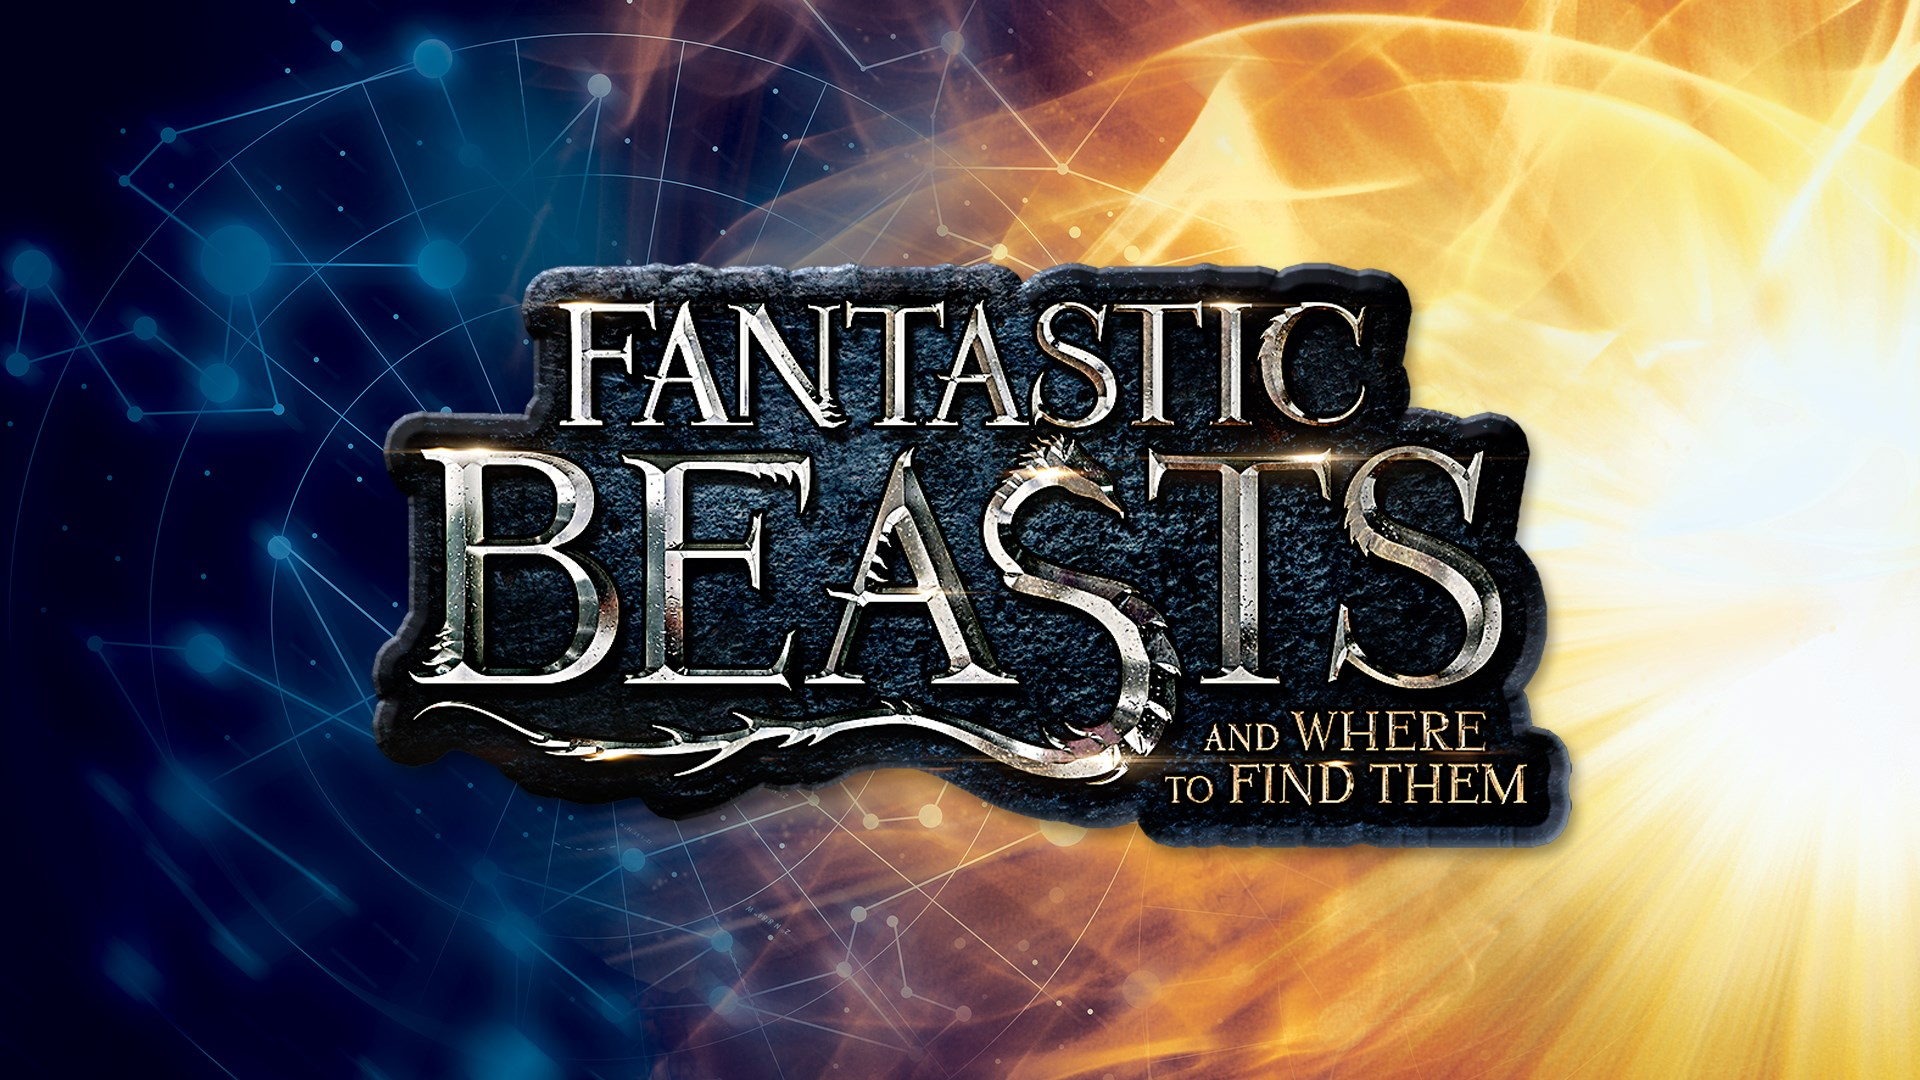 Get Fantastic Beasts And Where To Find Them Microsoft Store